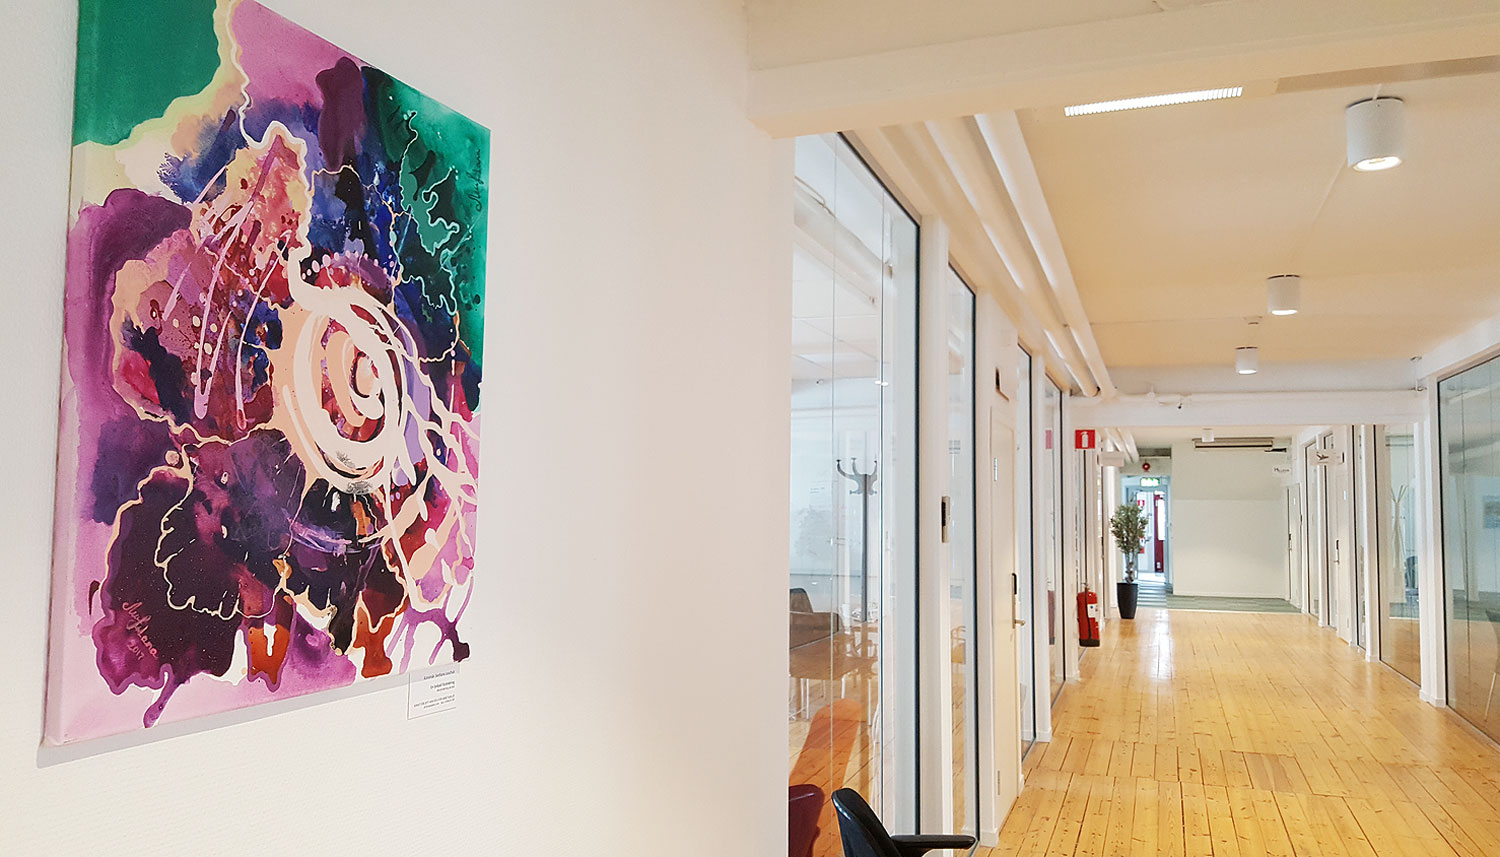 Art-by-Lanagraphic-business-centre-karlskrona-Metamorphoses